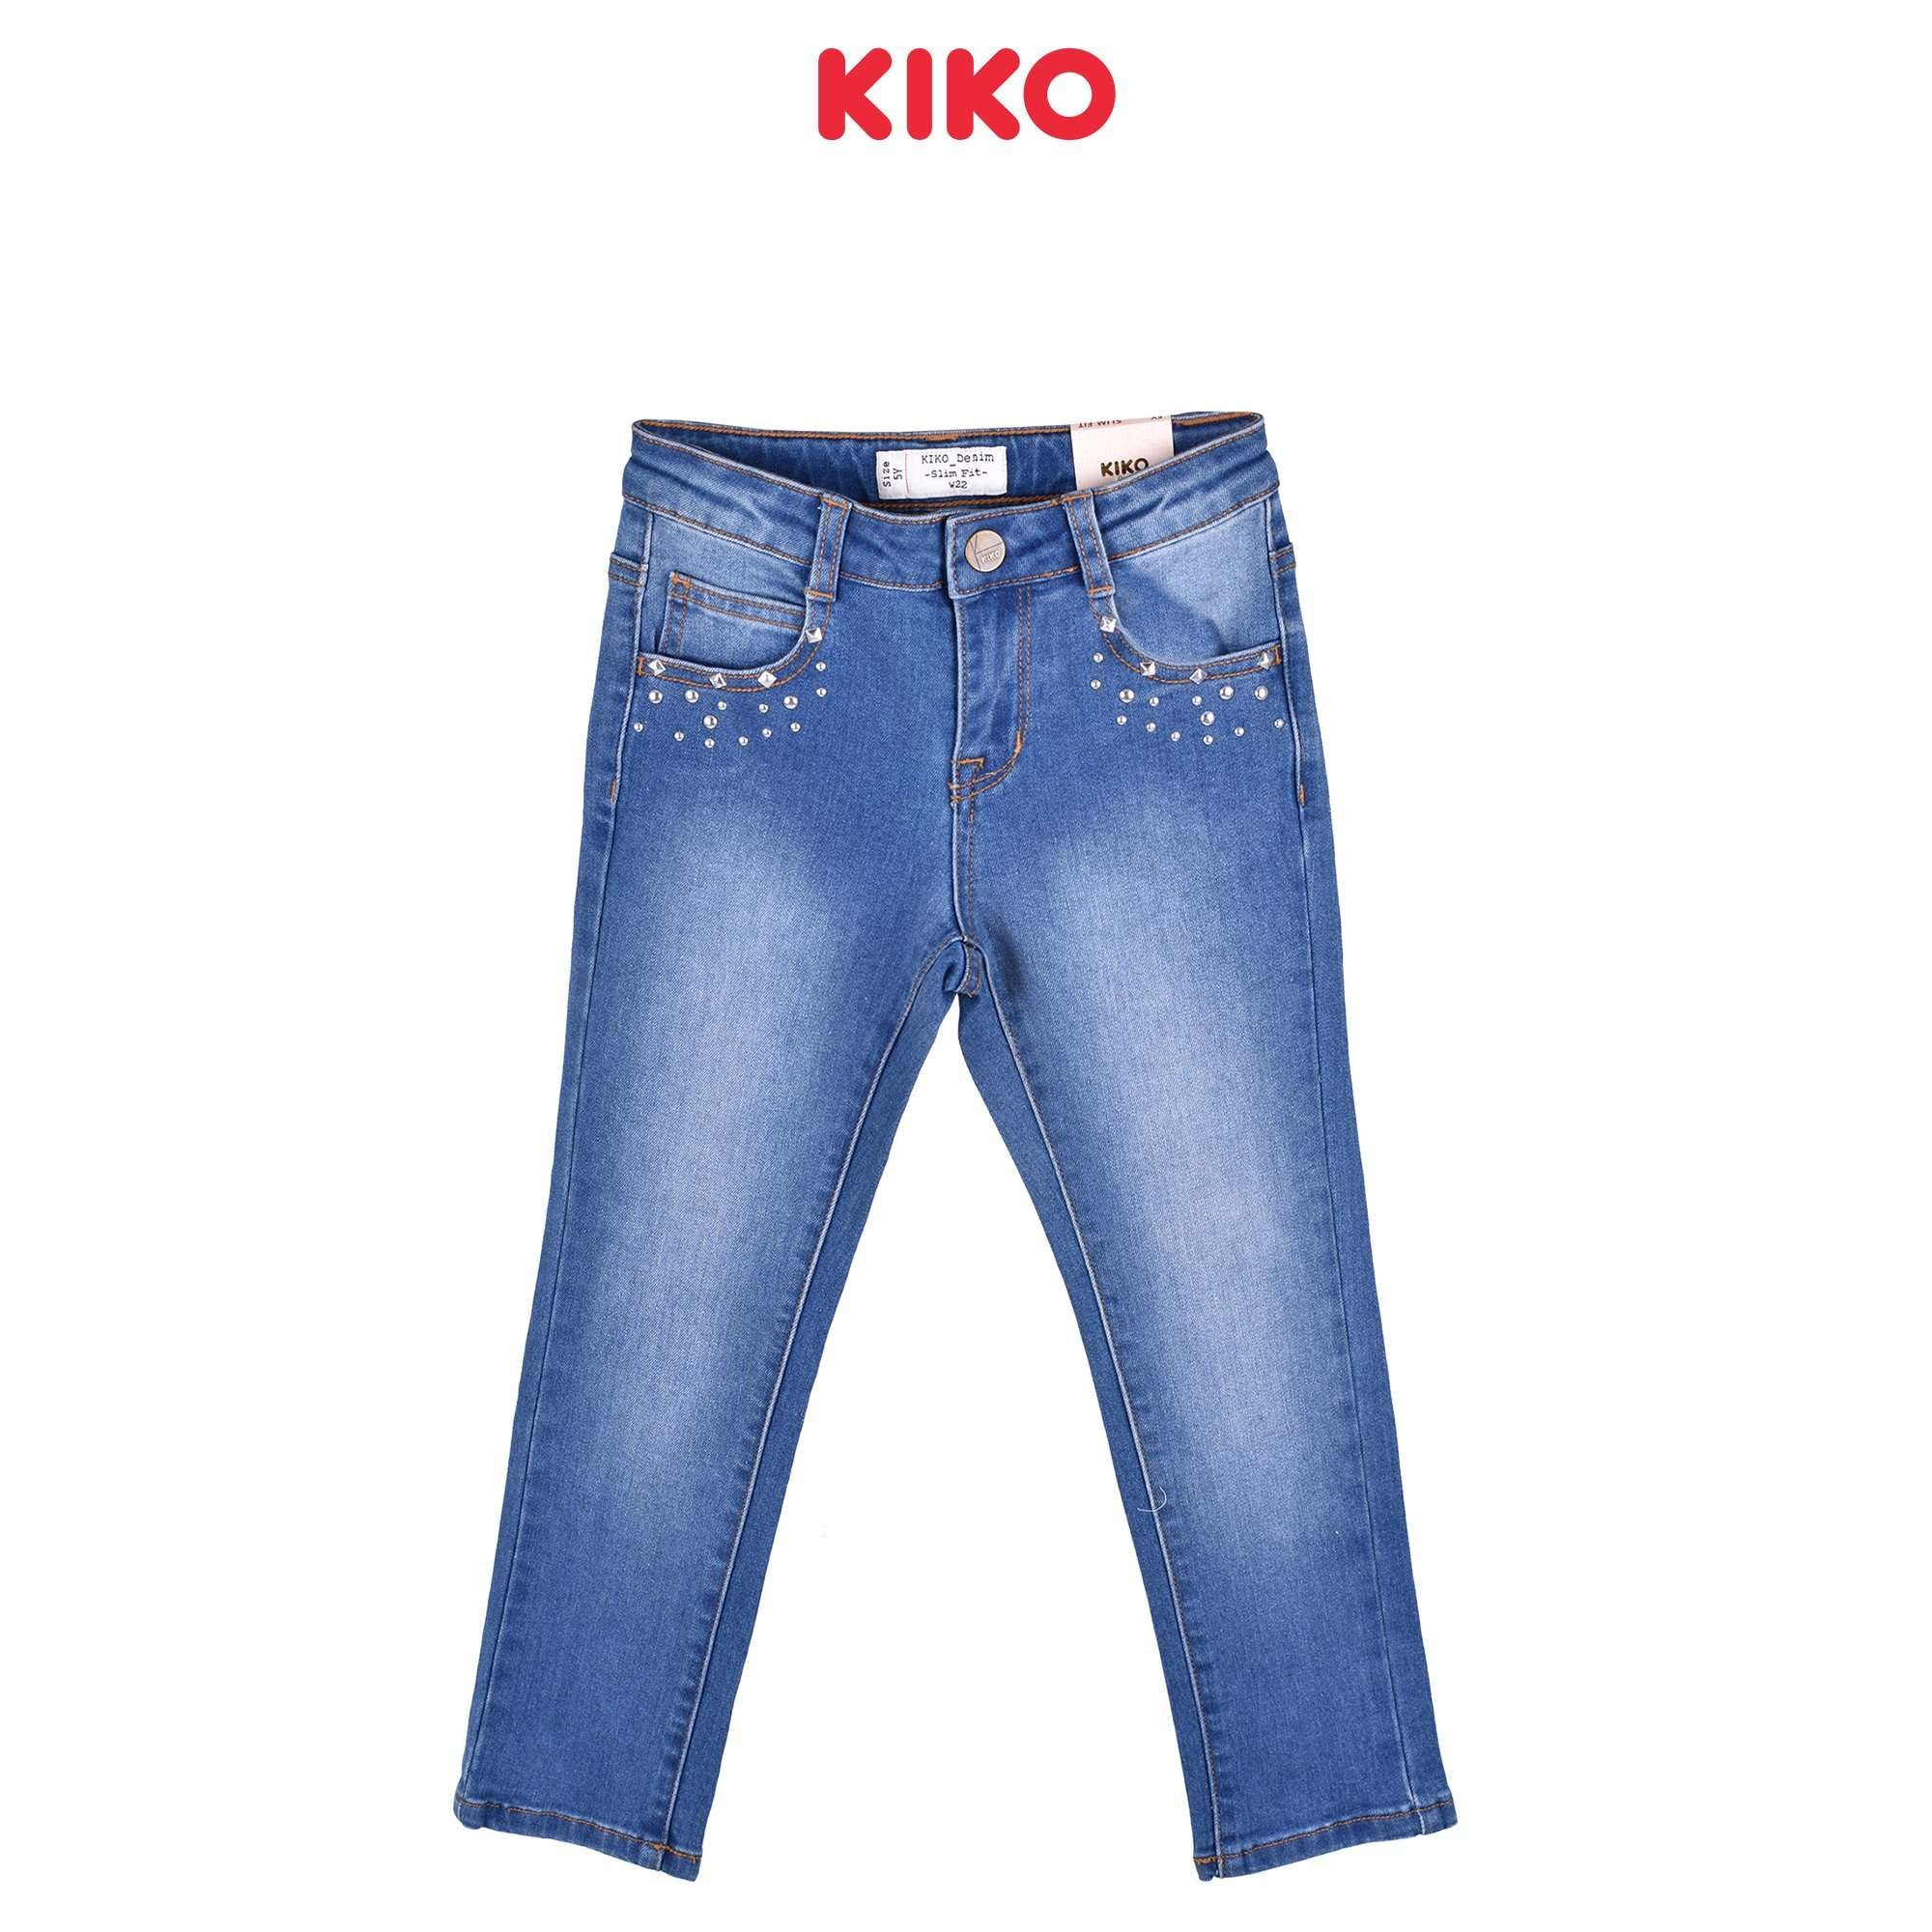 KIKO Girl Jeans Slim Fit - Blue 115057-211 : Buy KIKO online at CMG.MY